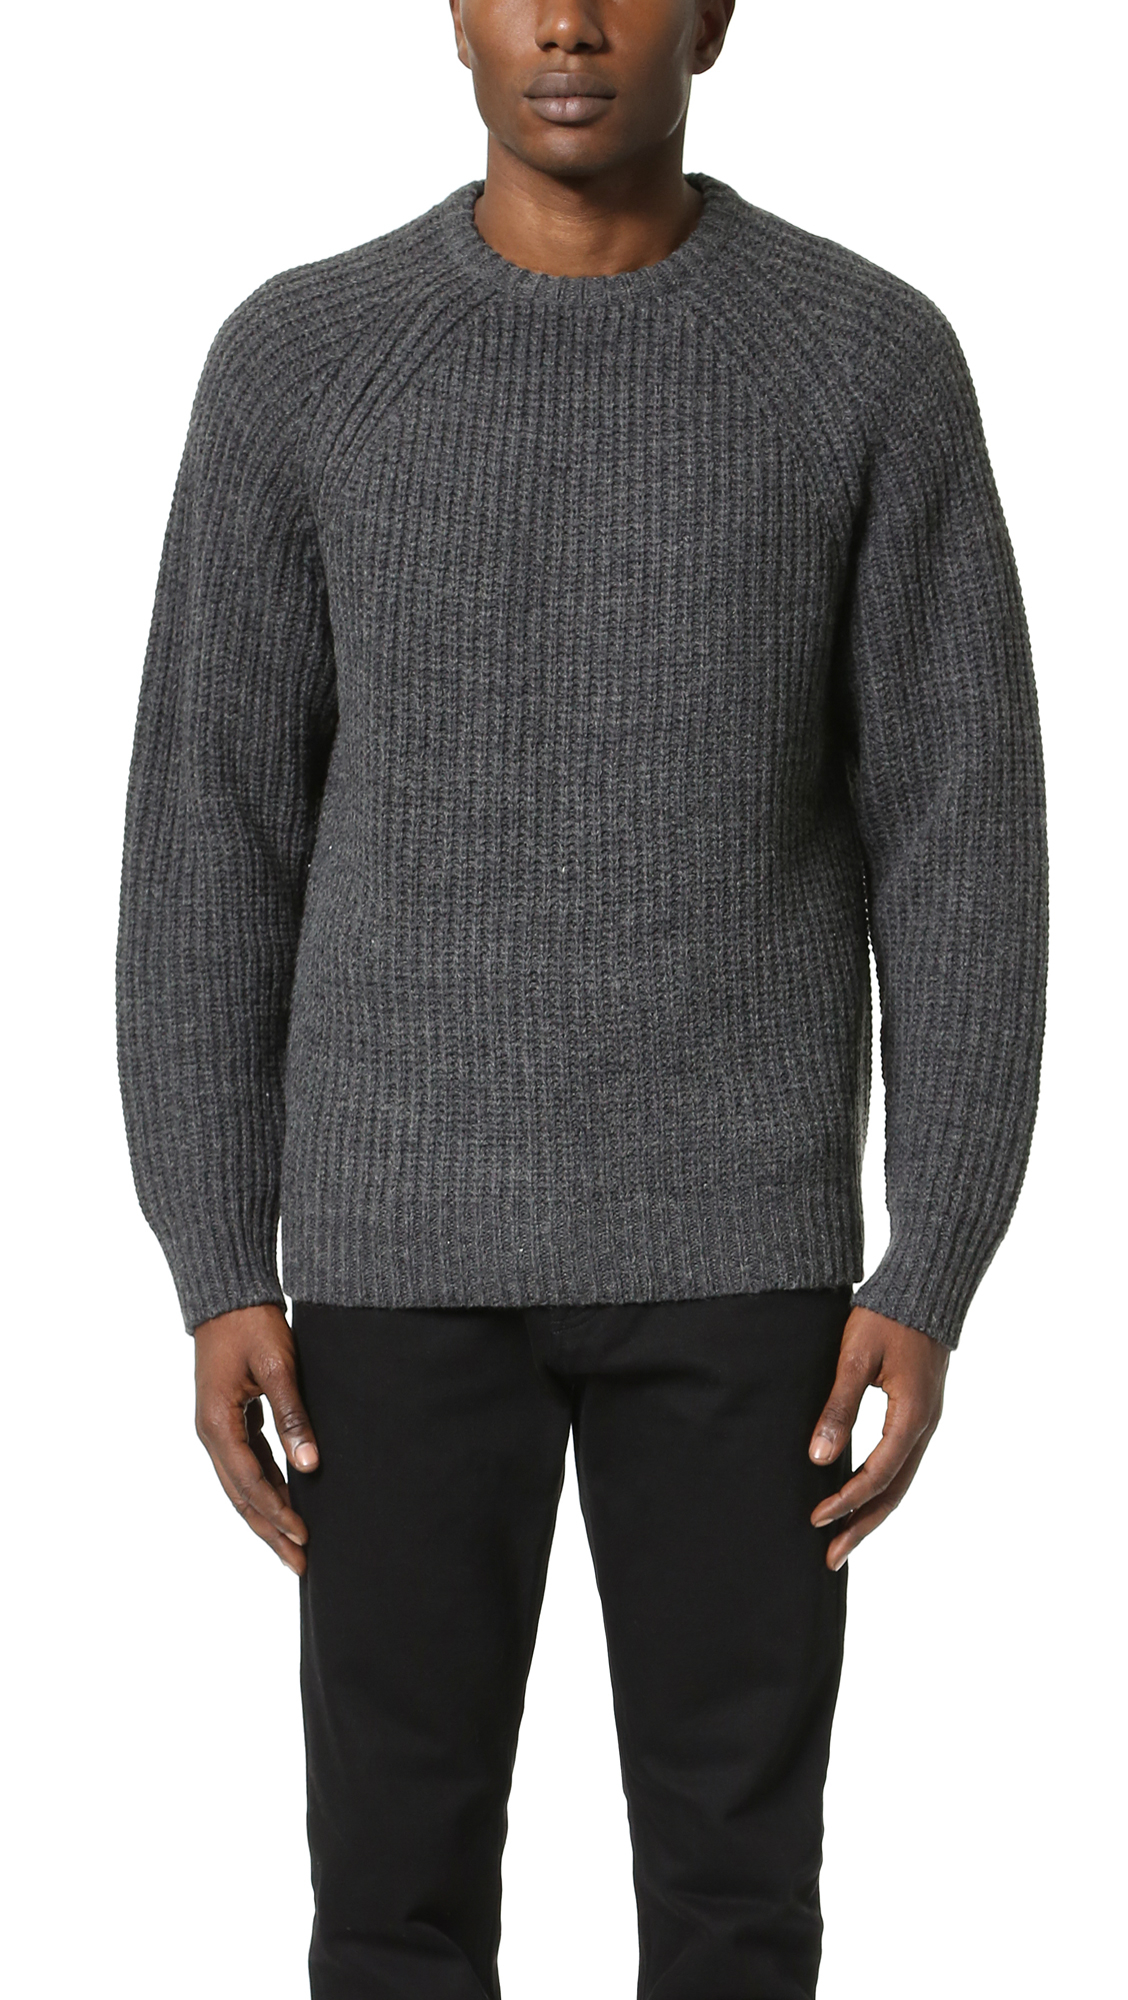 Lyst - Obey Mitte Sweater in Gray for Men